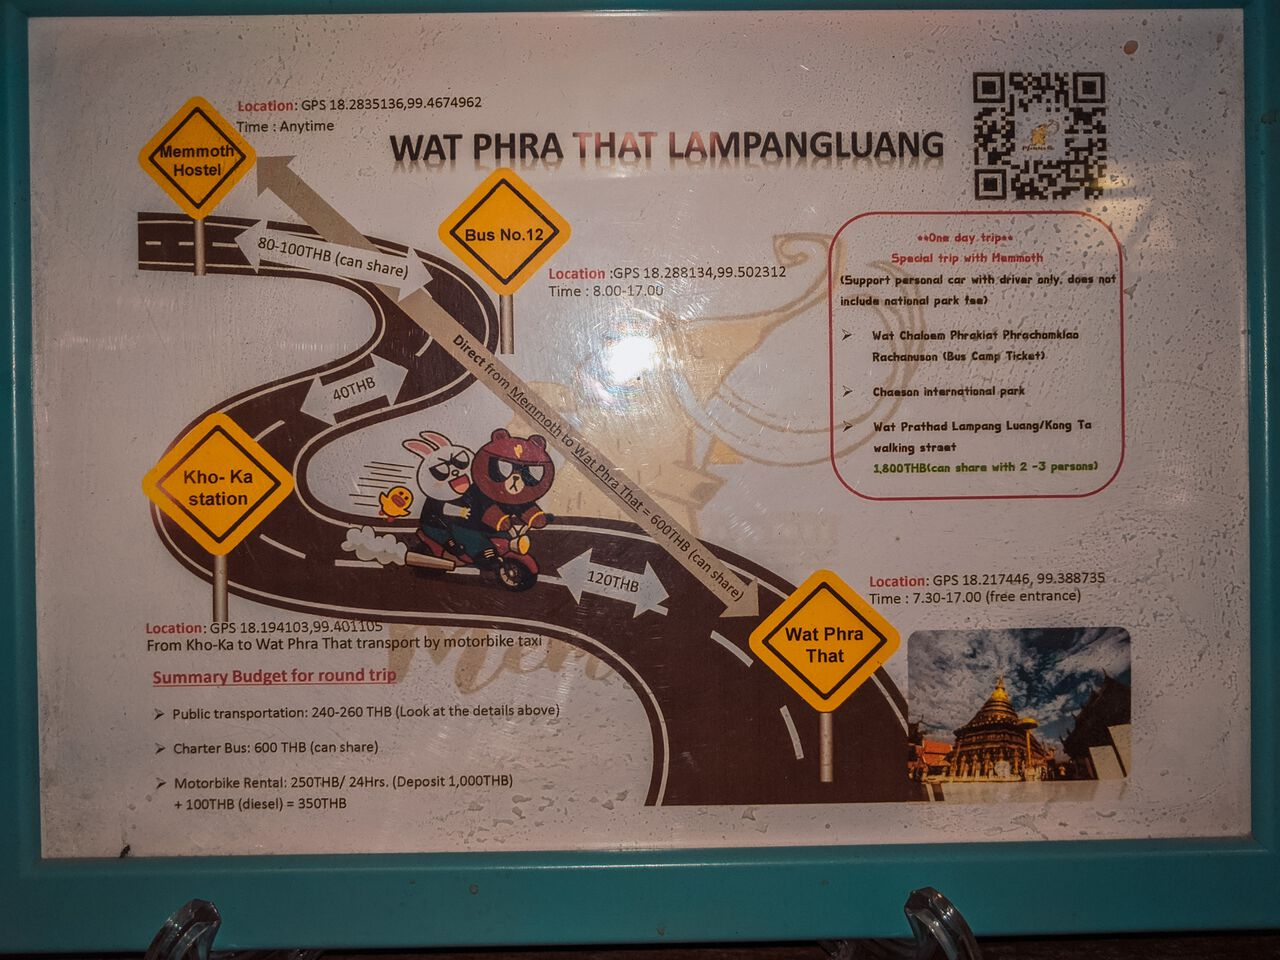 A direction from Lampang City to Wat Phra That Lampang Luang in Thailand using public transportation.